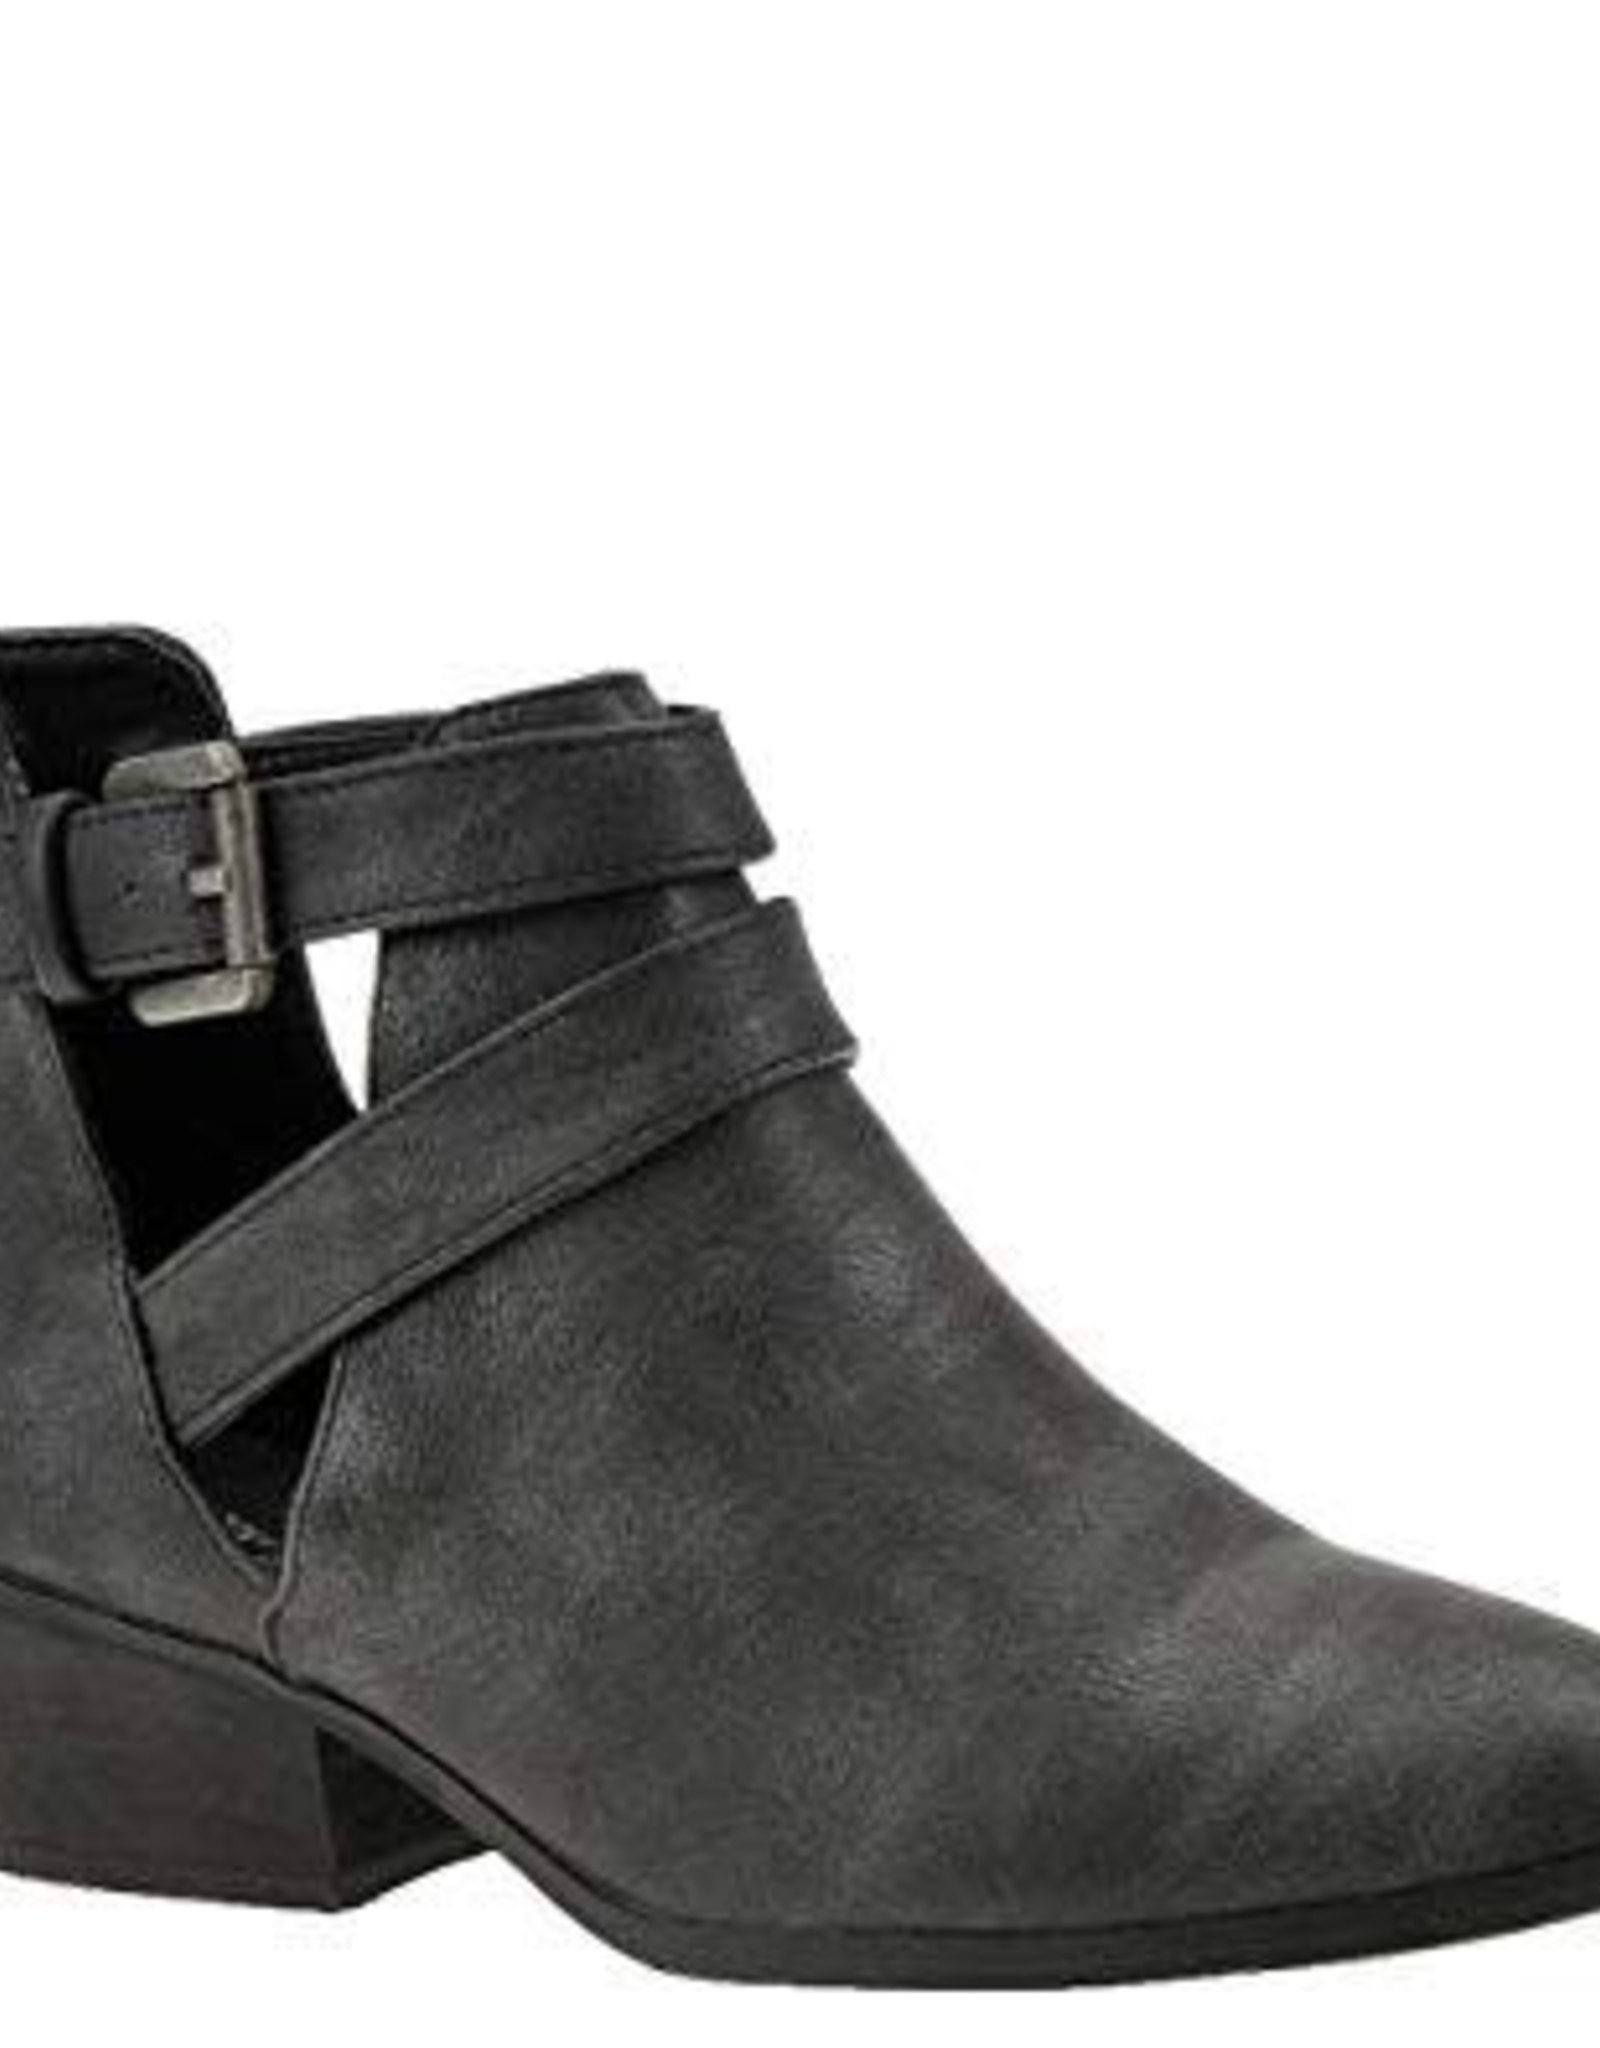 Volatile Remmy Boots in Black